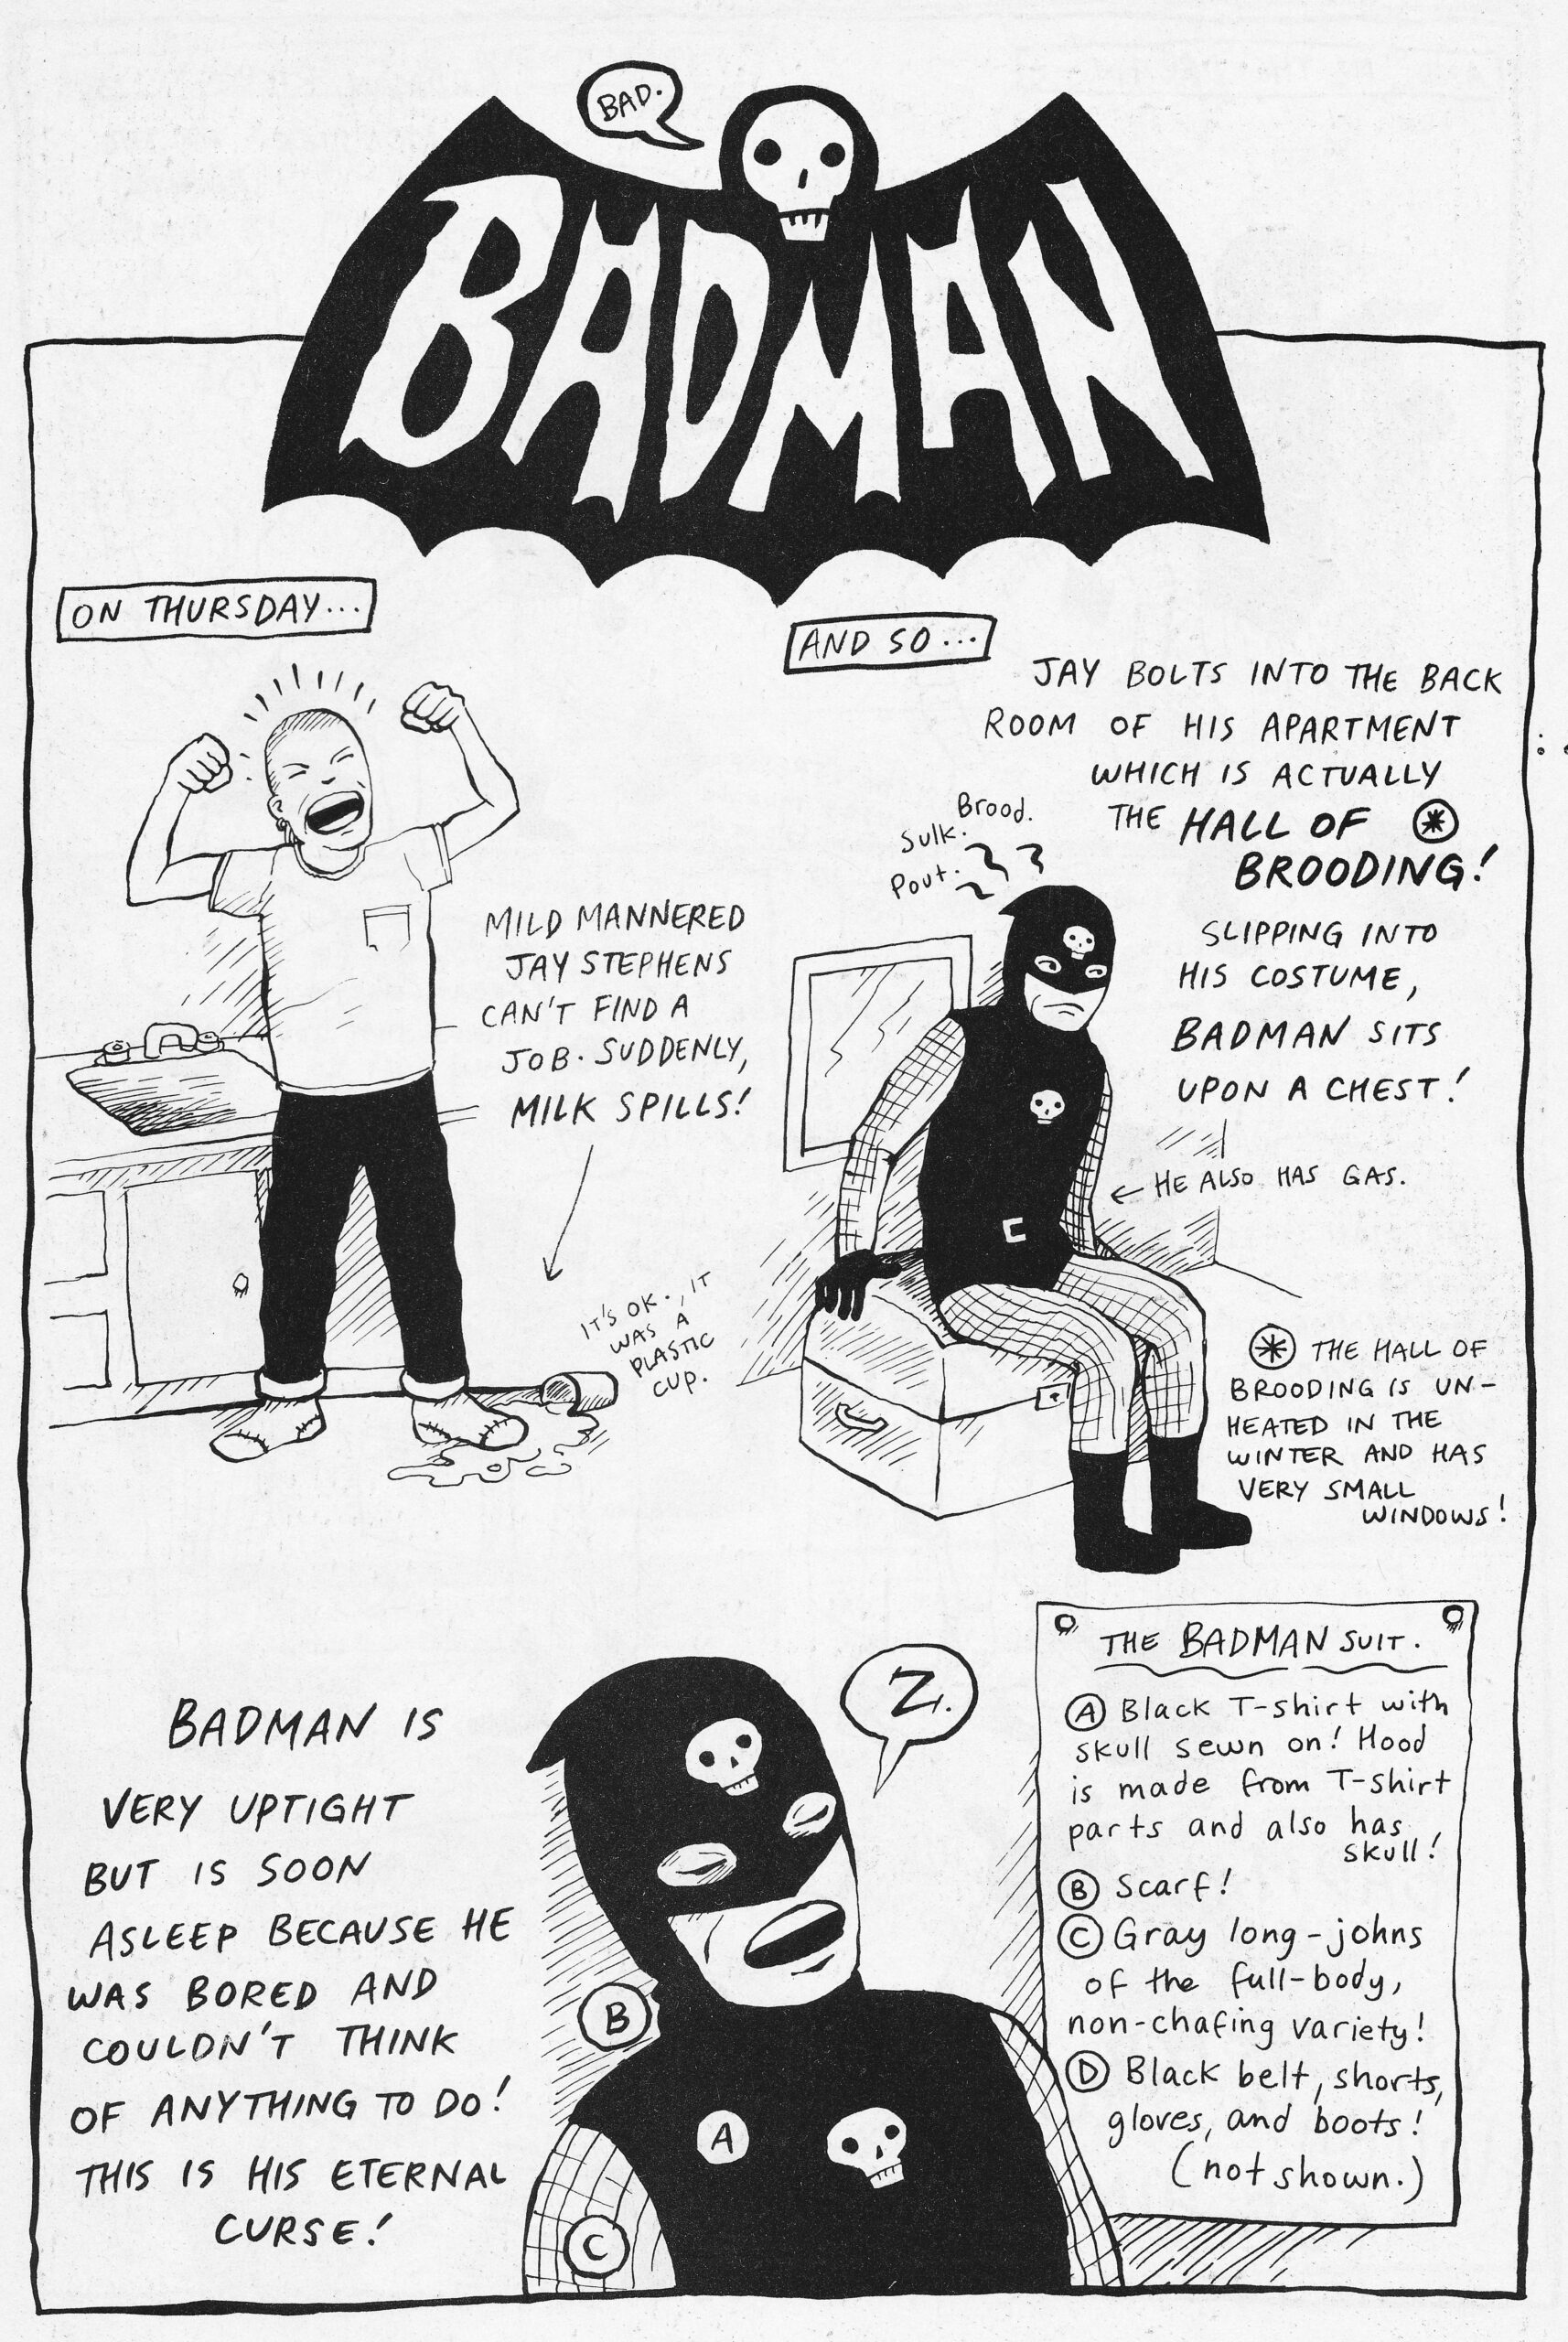 C:\Users\Robert\Documents\CARTOONING ILLUSTRATION ANIMATION\IMAGE CARTOON\IMAGE CARTOON B\BADMAN, SIN, 1, June 1992, 5.jpg